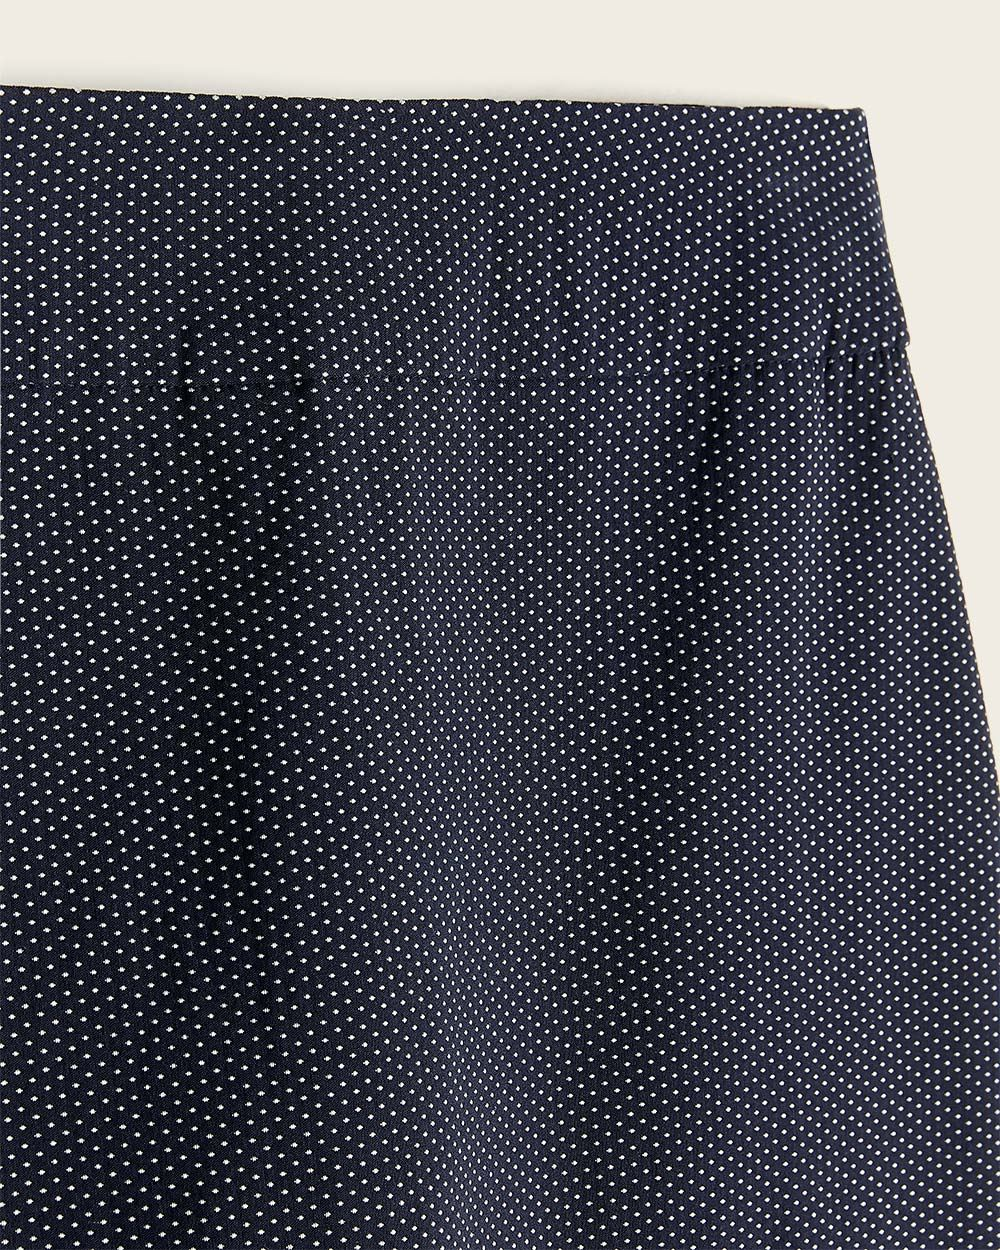 Micro Dots Pencil City Skirt